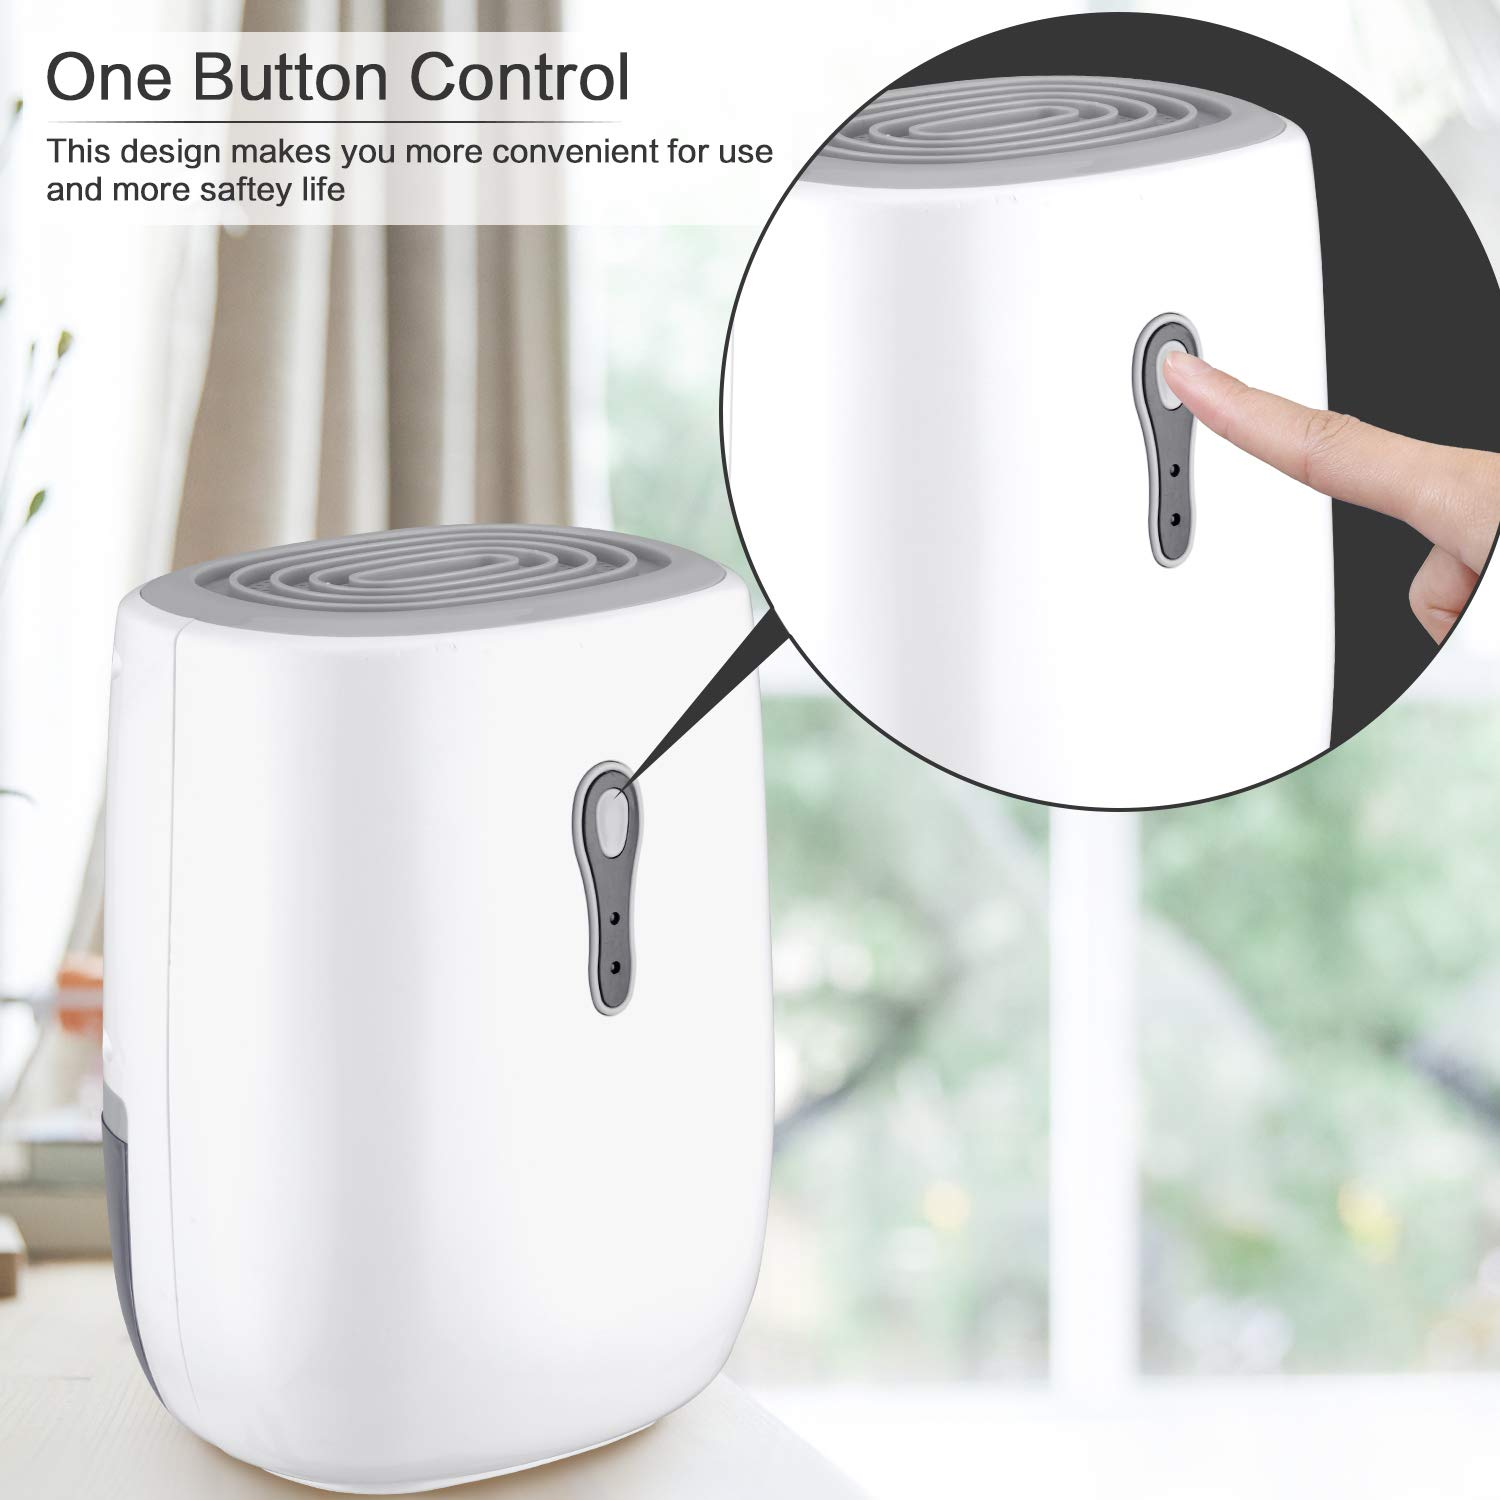 COSVII Dehumidifier for Home 500ML Water Tank, Portable Home Dehumidifier(150 sq ft) Household Small Dehumidifier for Basement Bedroom Baby Room Office Bathroom Kitchen, Auto Shut Off